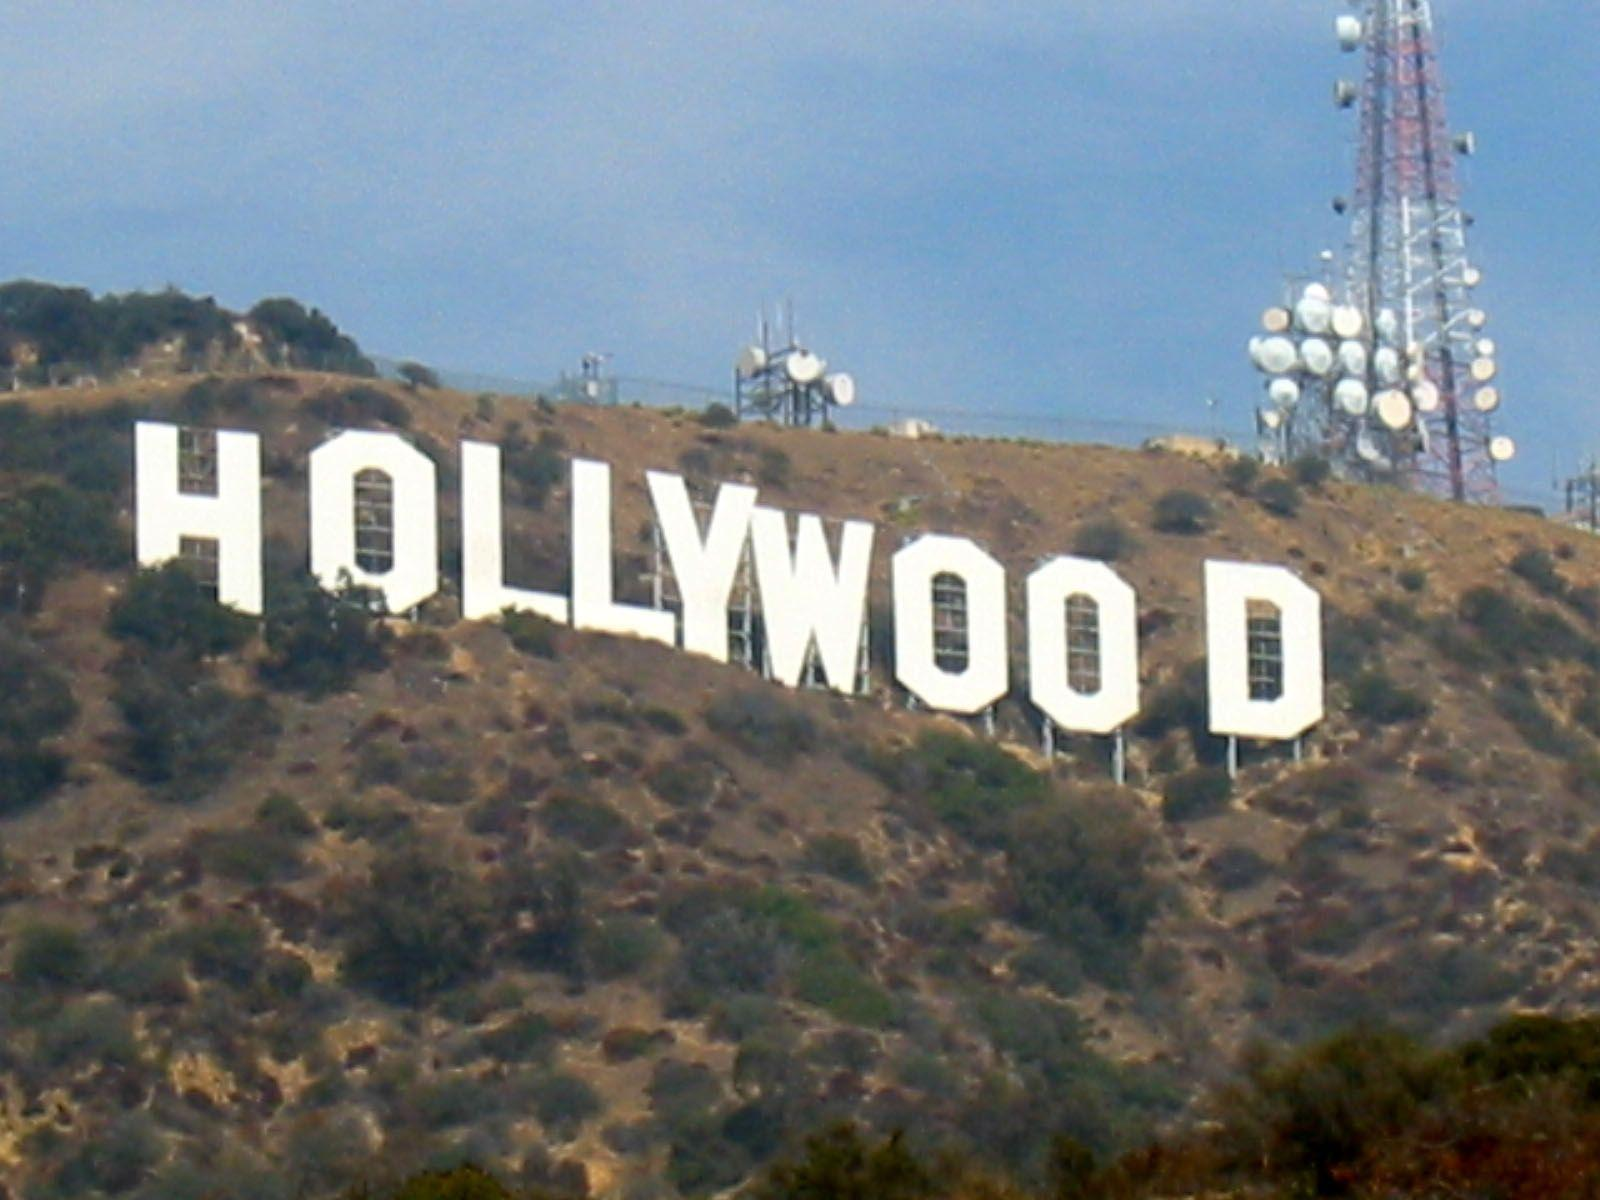 wallpapers a hollywood - photo #5